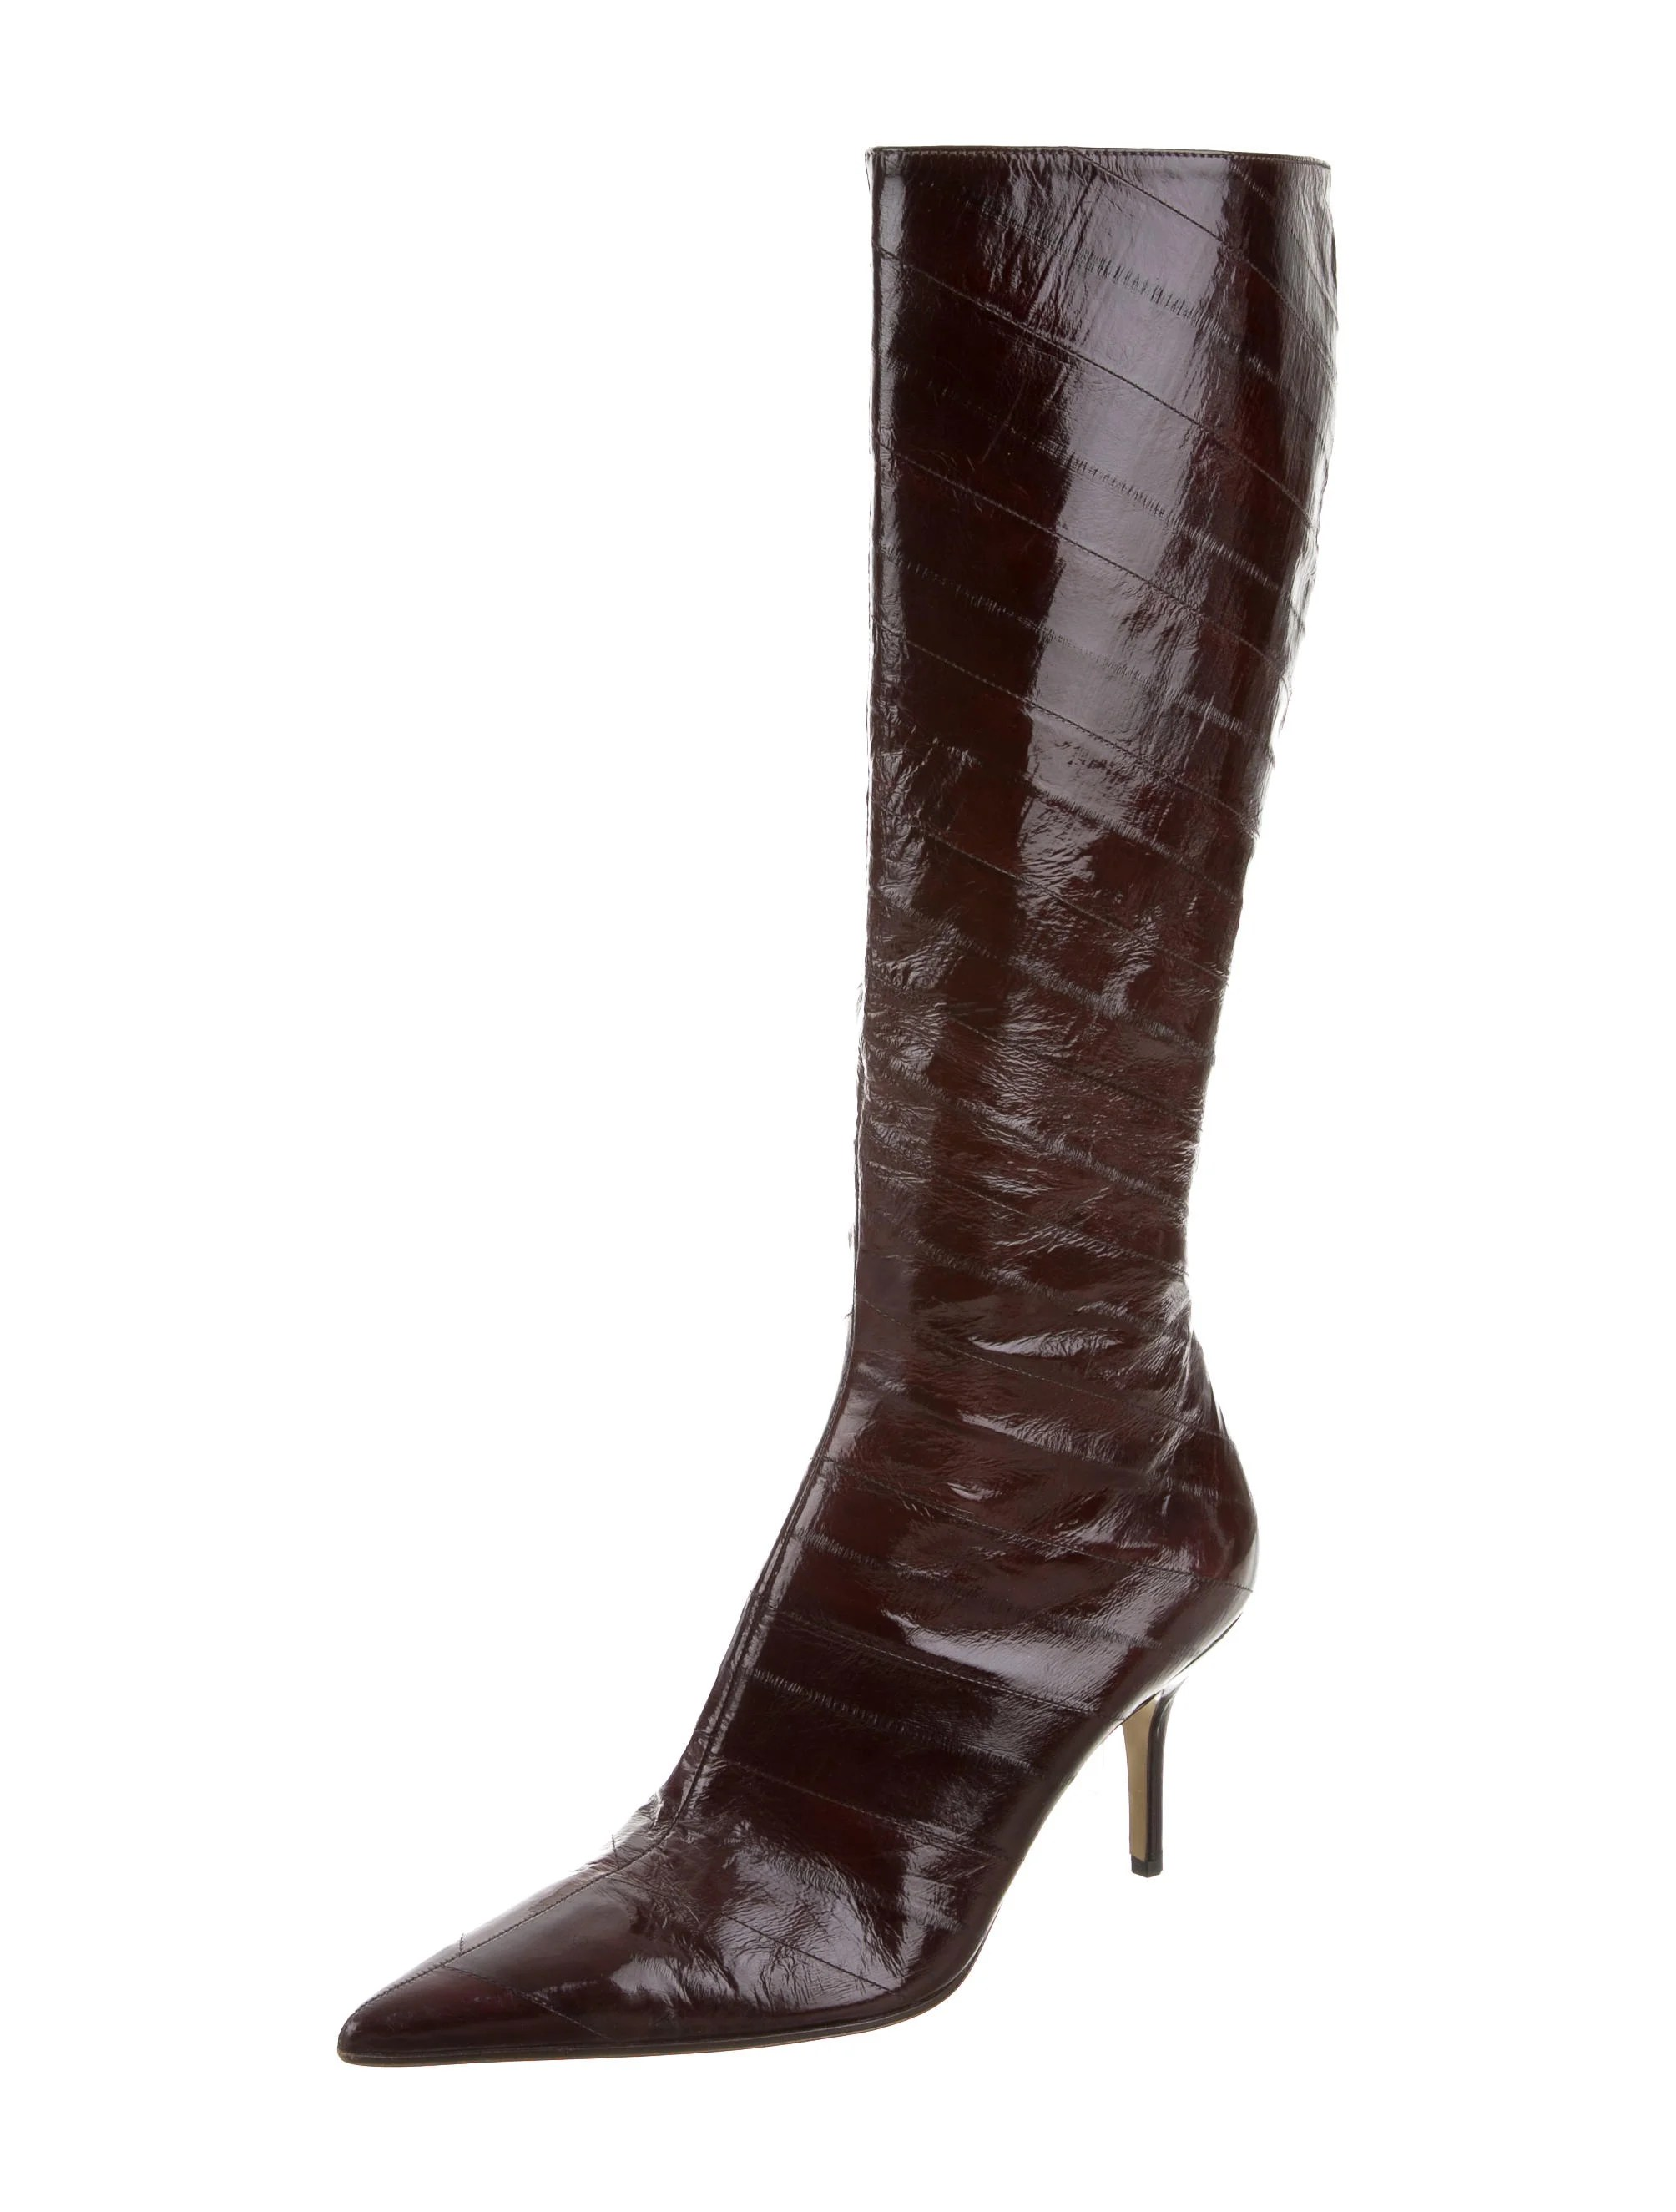 Dolce Gabbana Eel Skin Knee High Boots Shoes